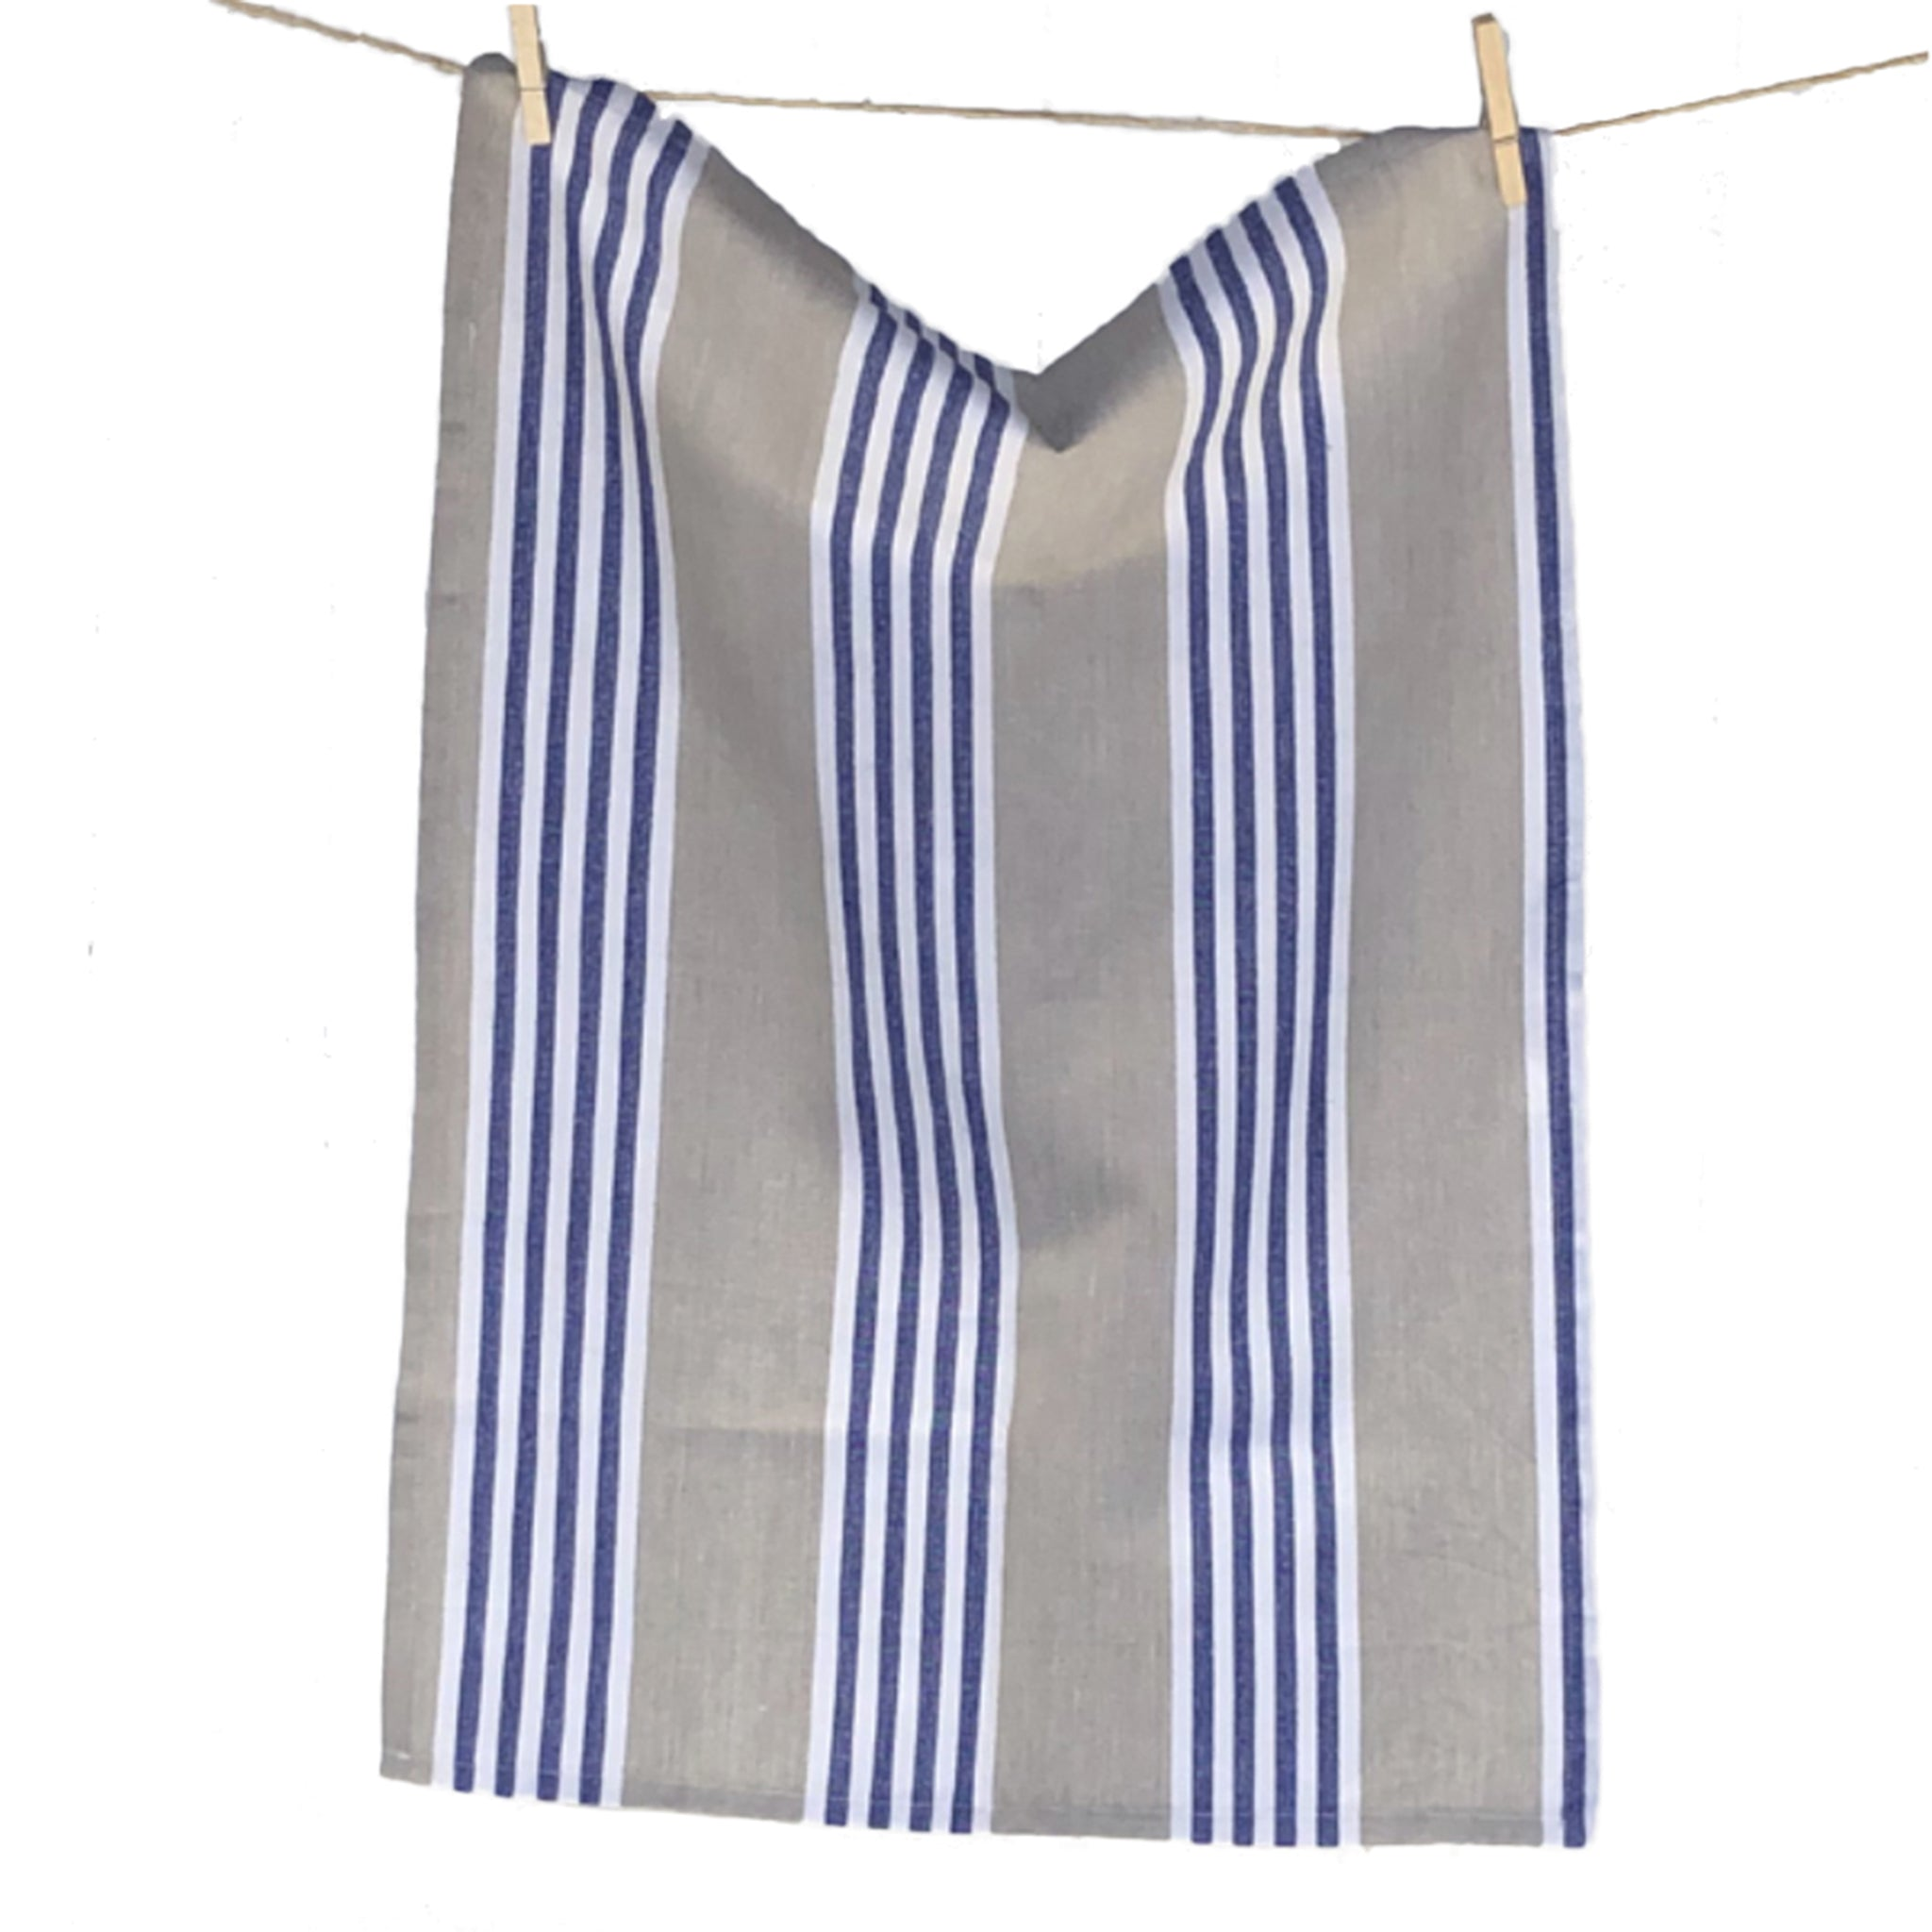 Tea Towels in Blue Tones